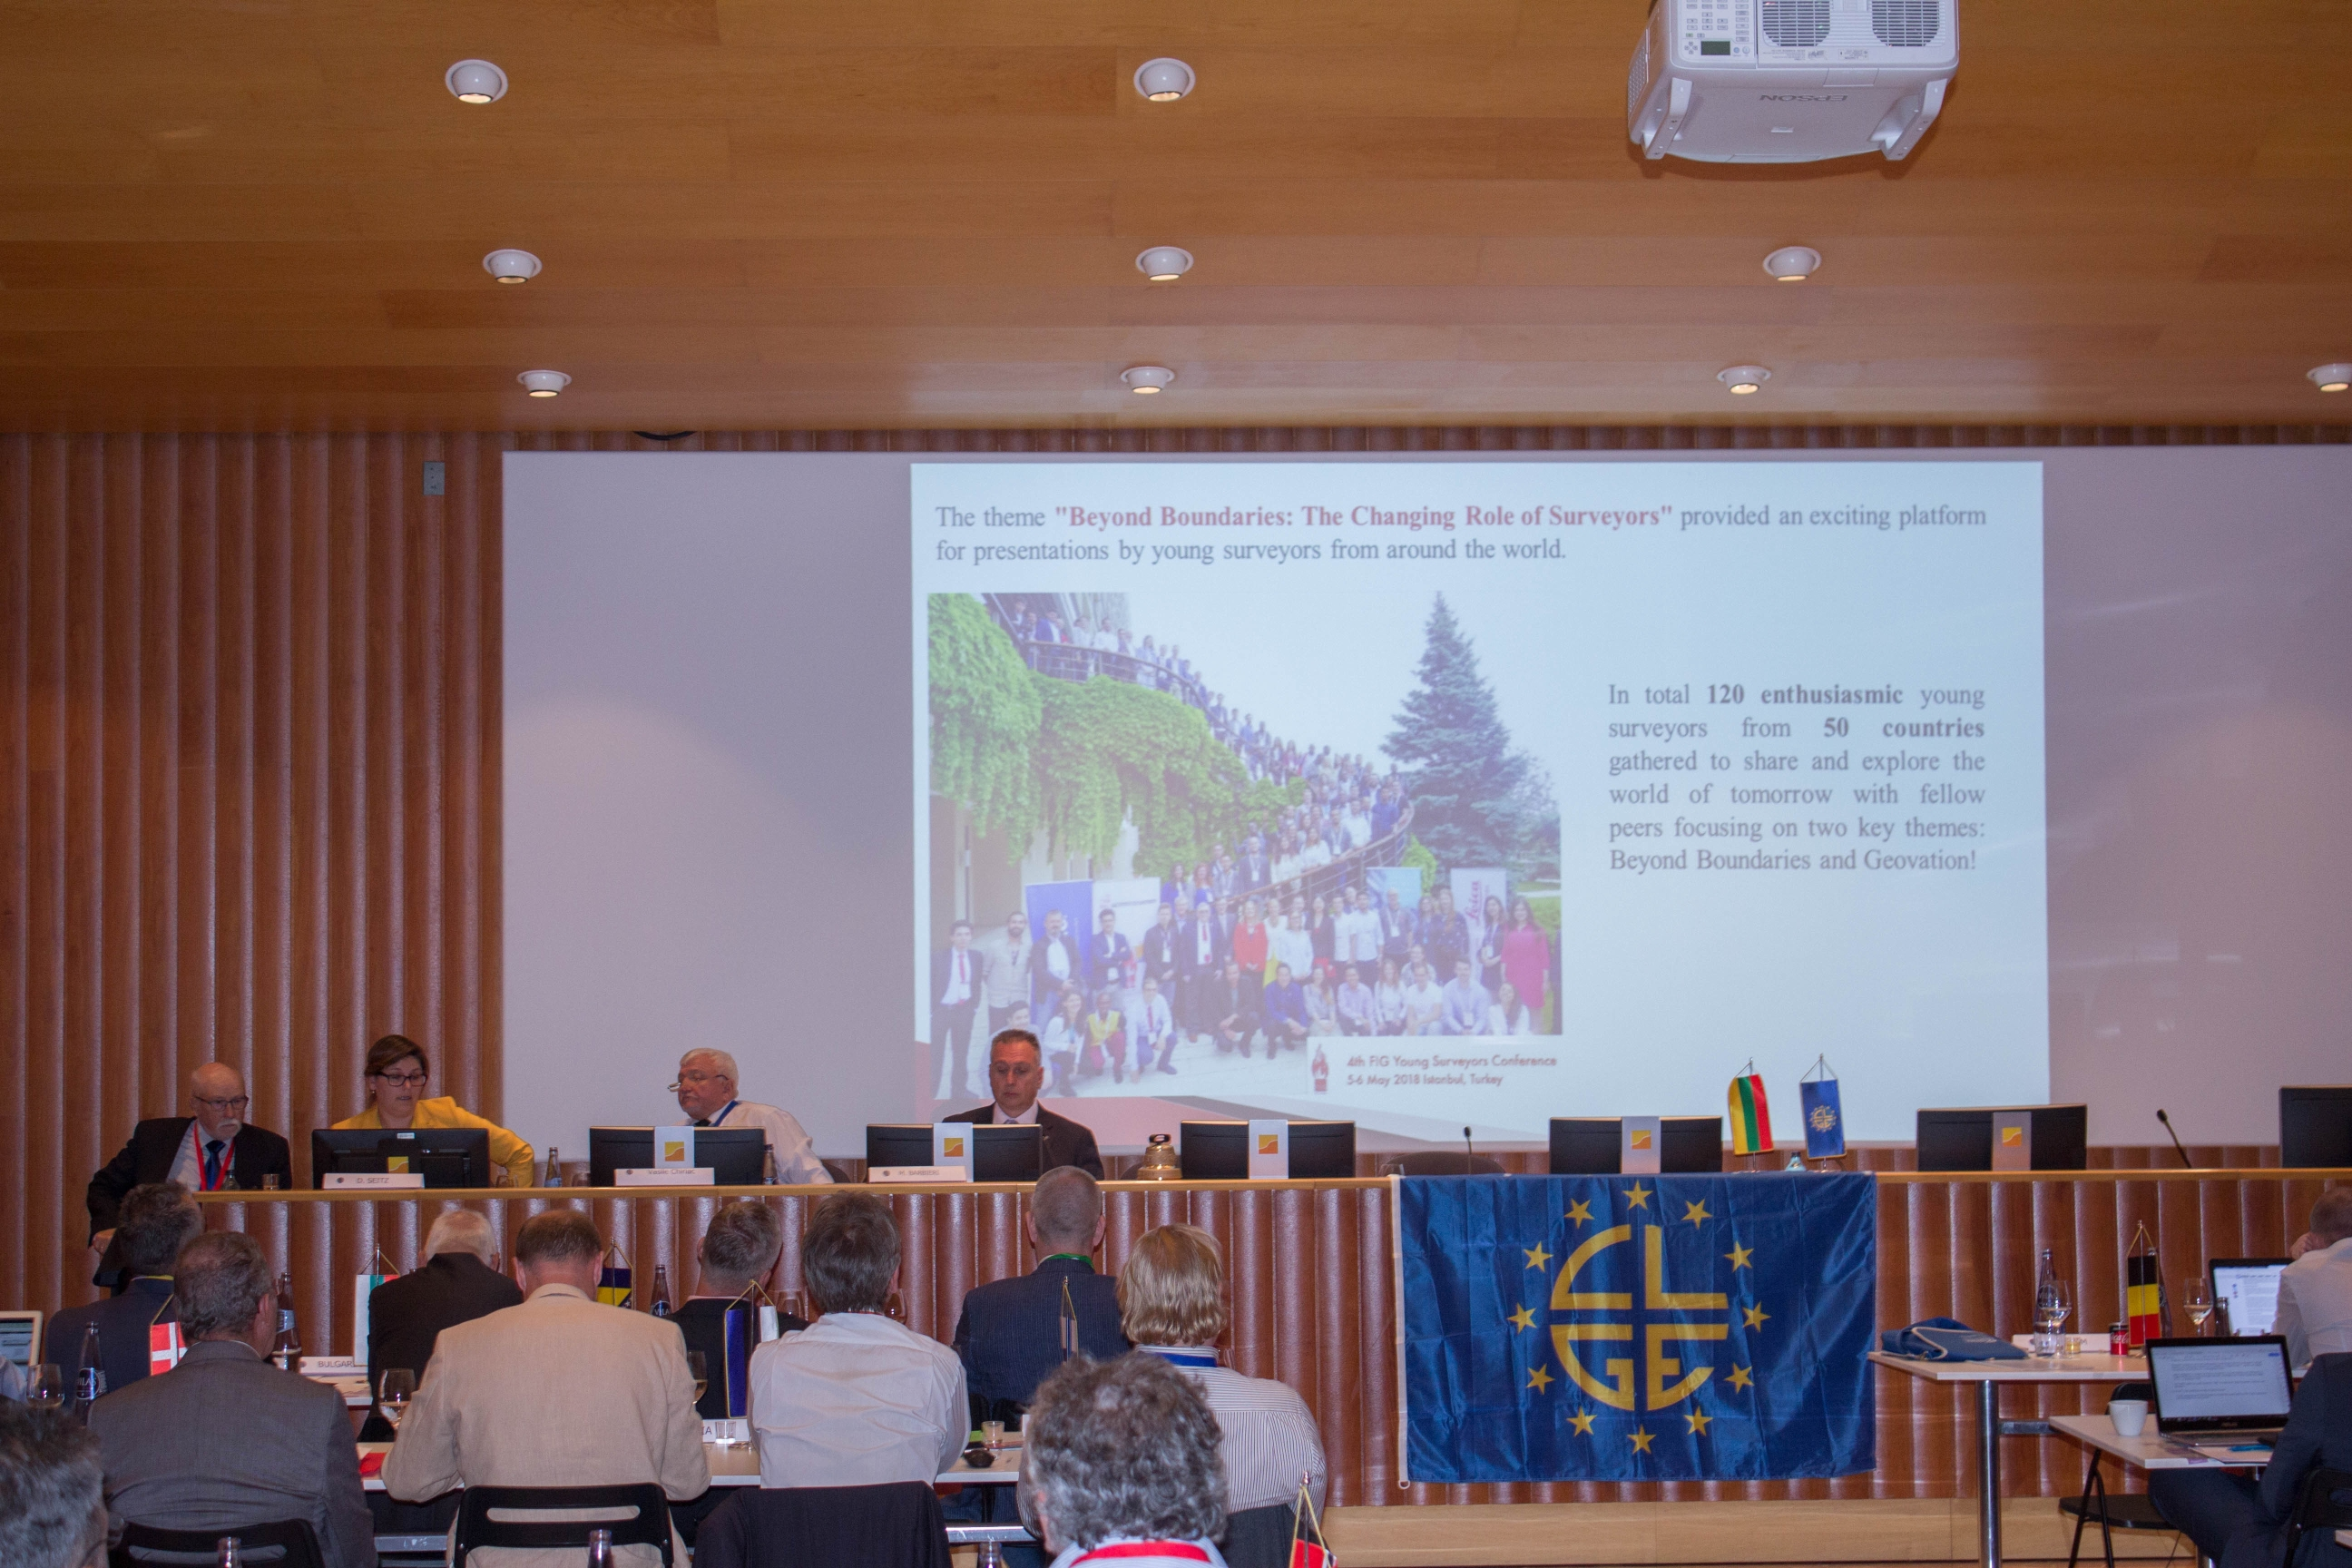 clge-general-assembly-barcelona-2018_44329715705_o.jpg